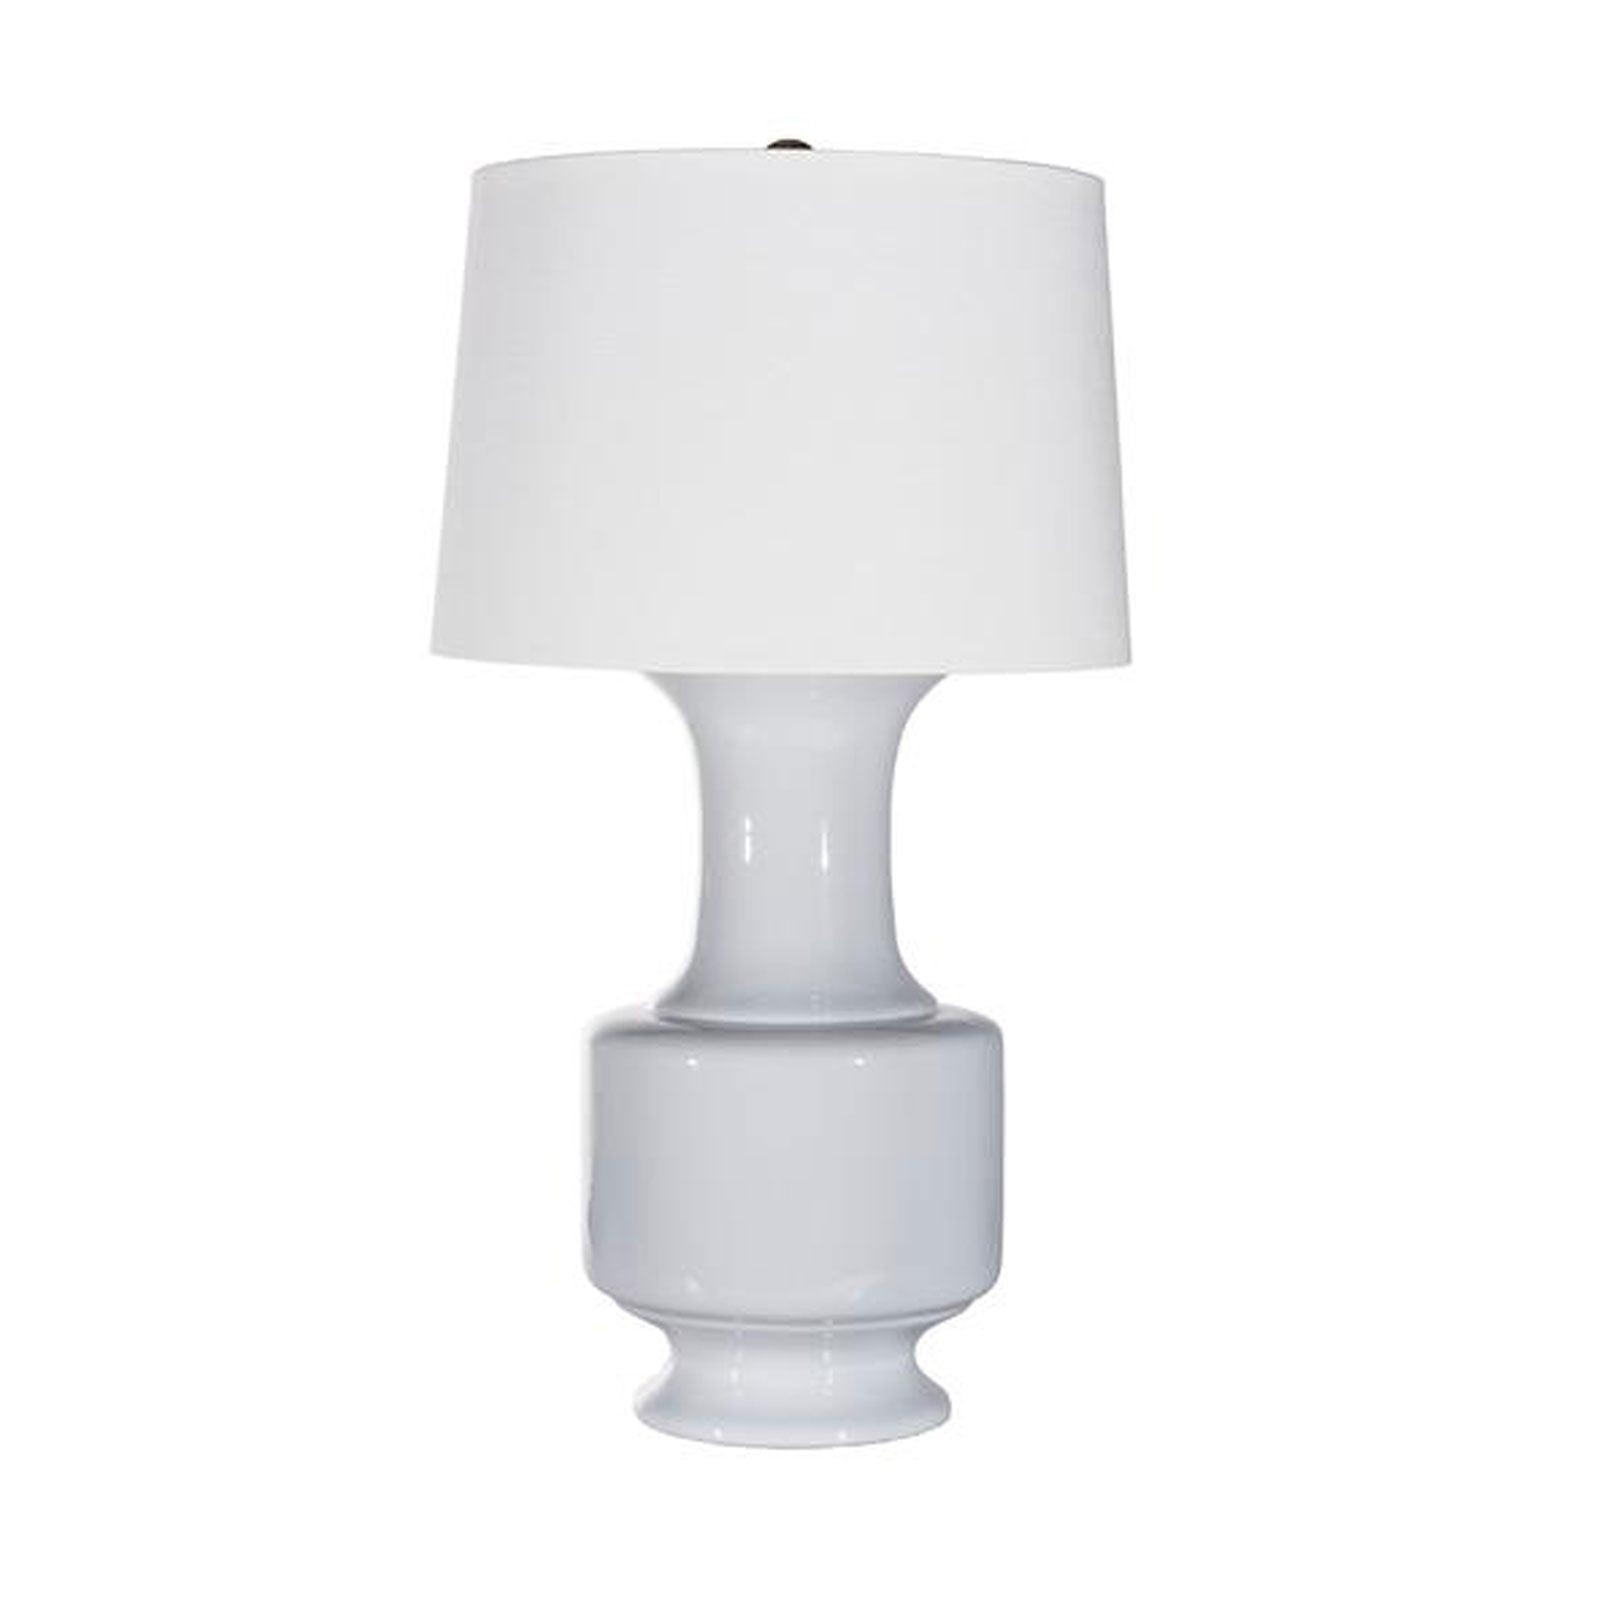 Megan Lamp in Cloud Blue